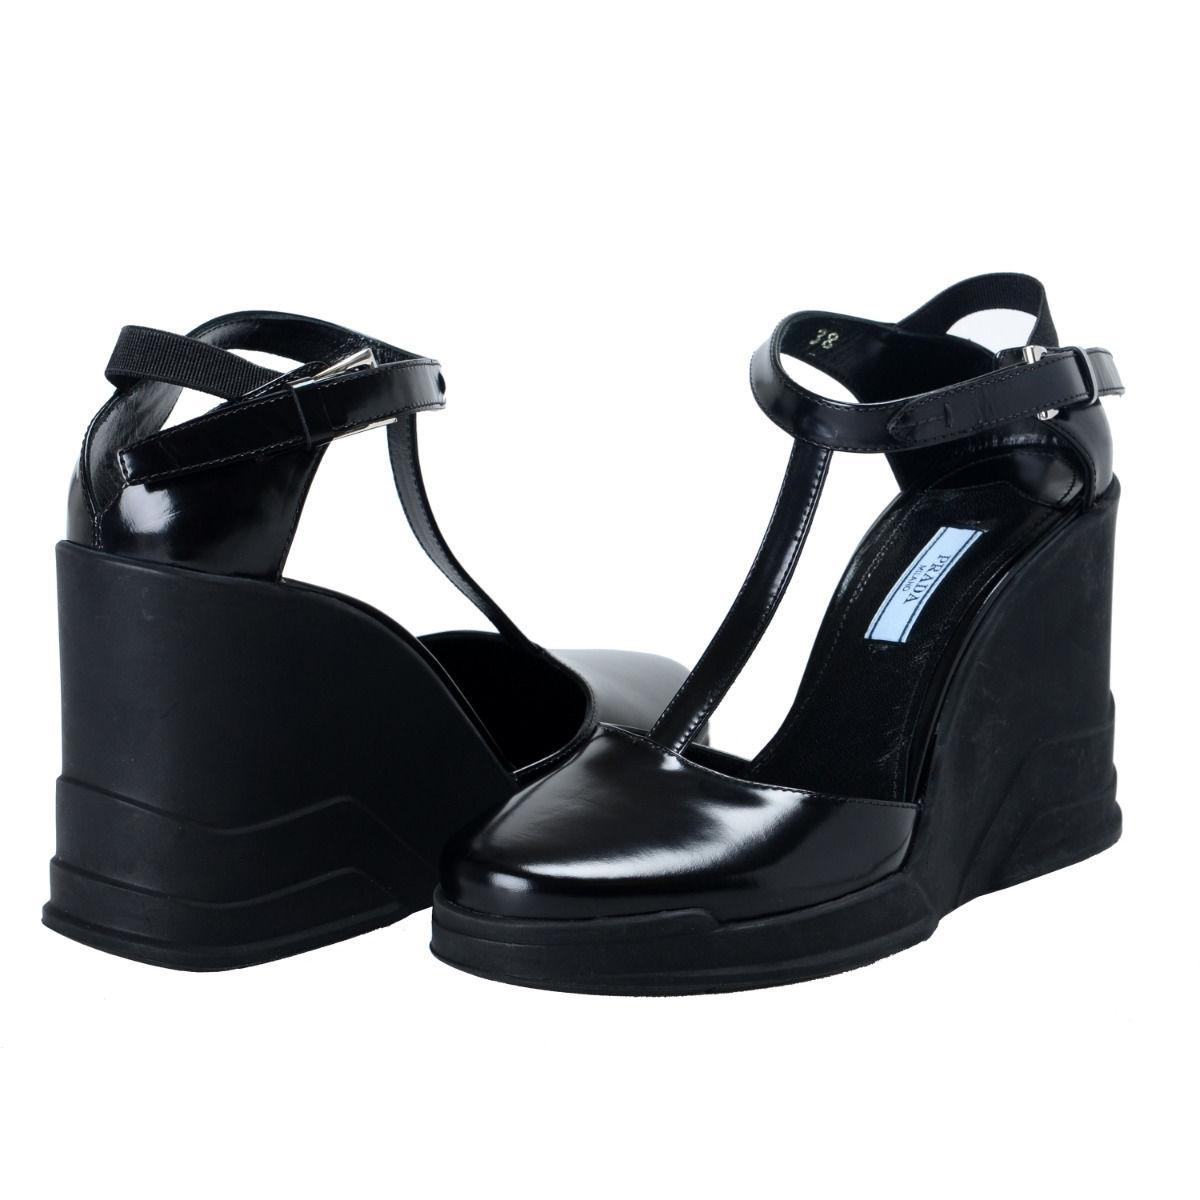 d1e008196 ... Man Woman-Prada Black Leather Ankle Ankle Ankle Wedges T-strap Sandals  Size